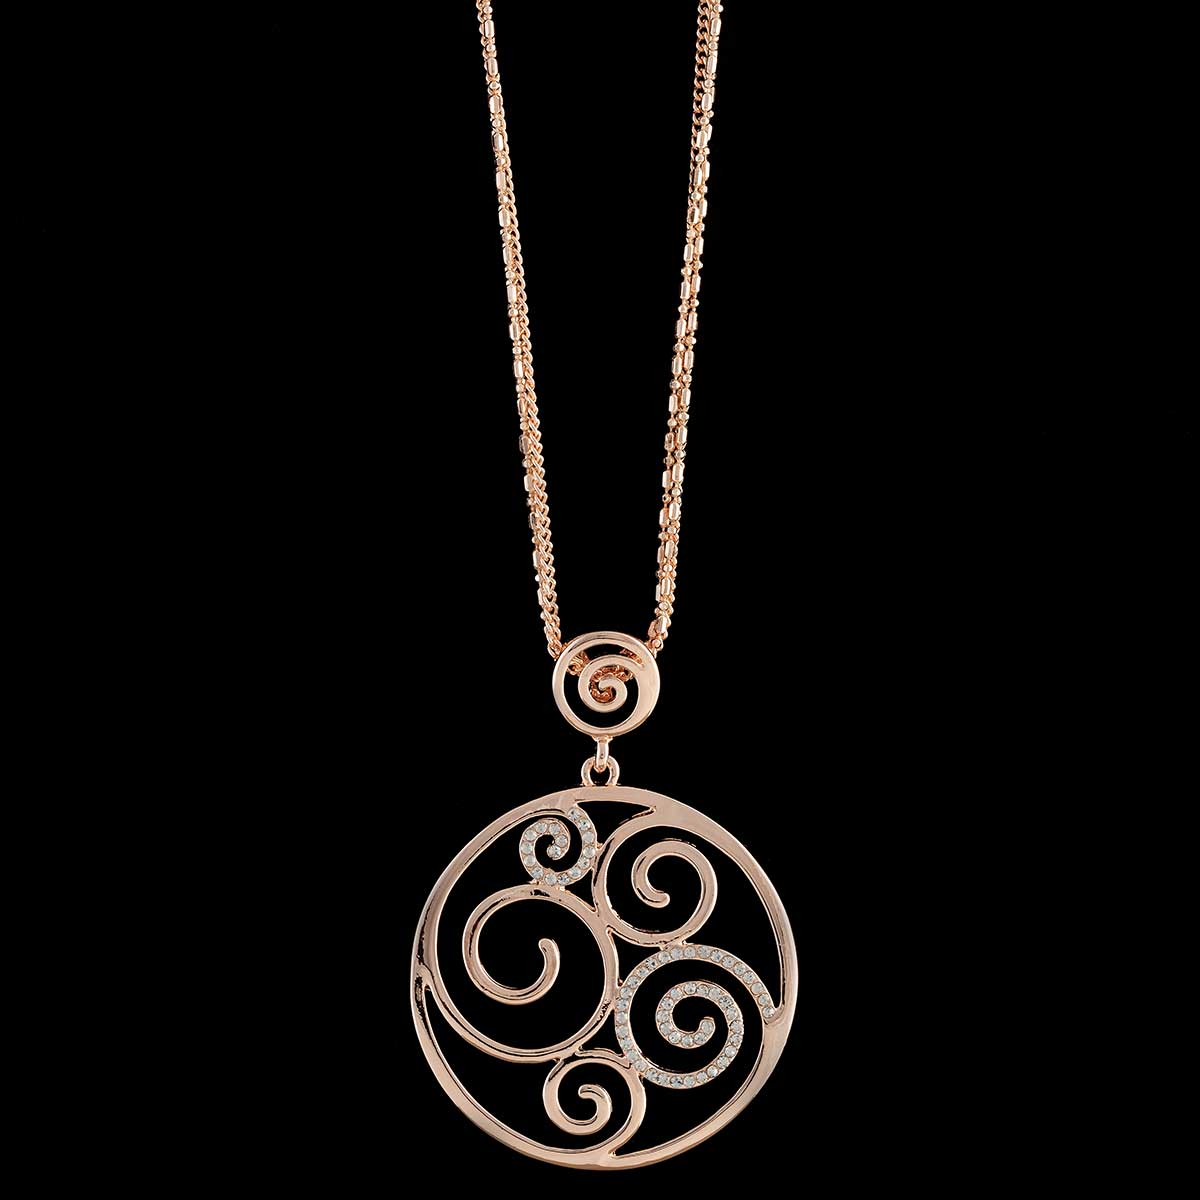 Rose Gold Celtic Swirl Medallion Necklace on Chain